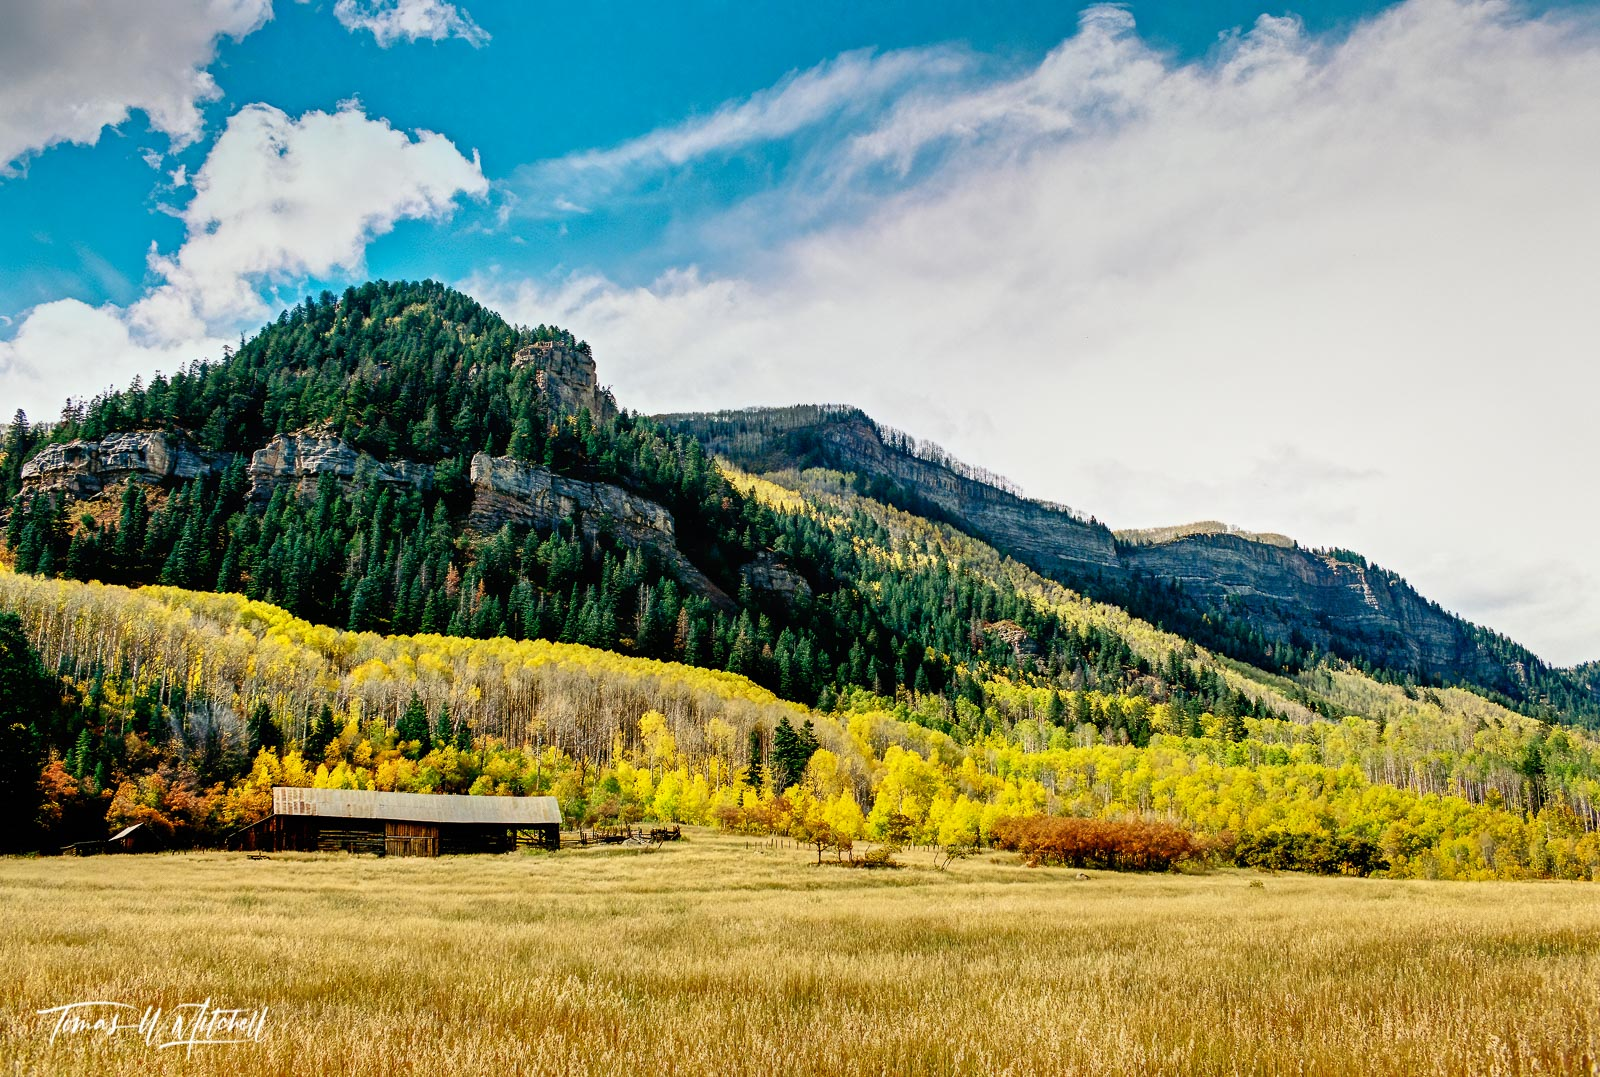 limited edition, fine art, prints, photograph, film, hermosa cliffs, cliffs, highway 550, colorado, durango, nikon, traveling, photographing, fall, colors, sky, blue, clouds, grass, aspens, forested, , photo